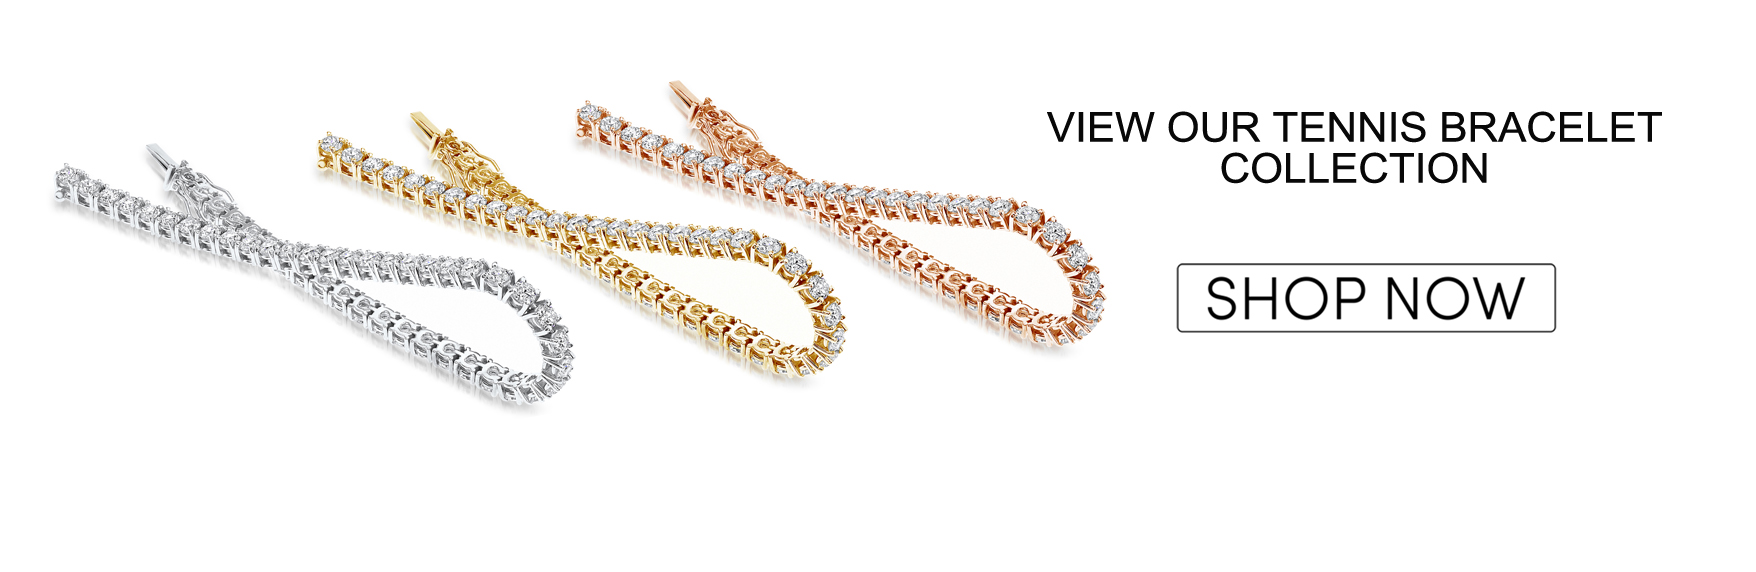 Shop our tennis bracelets